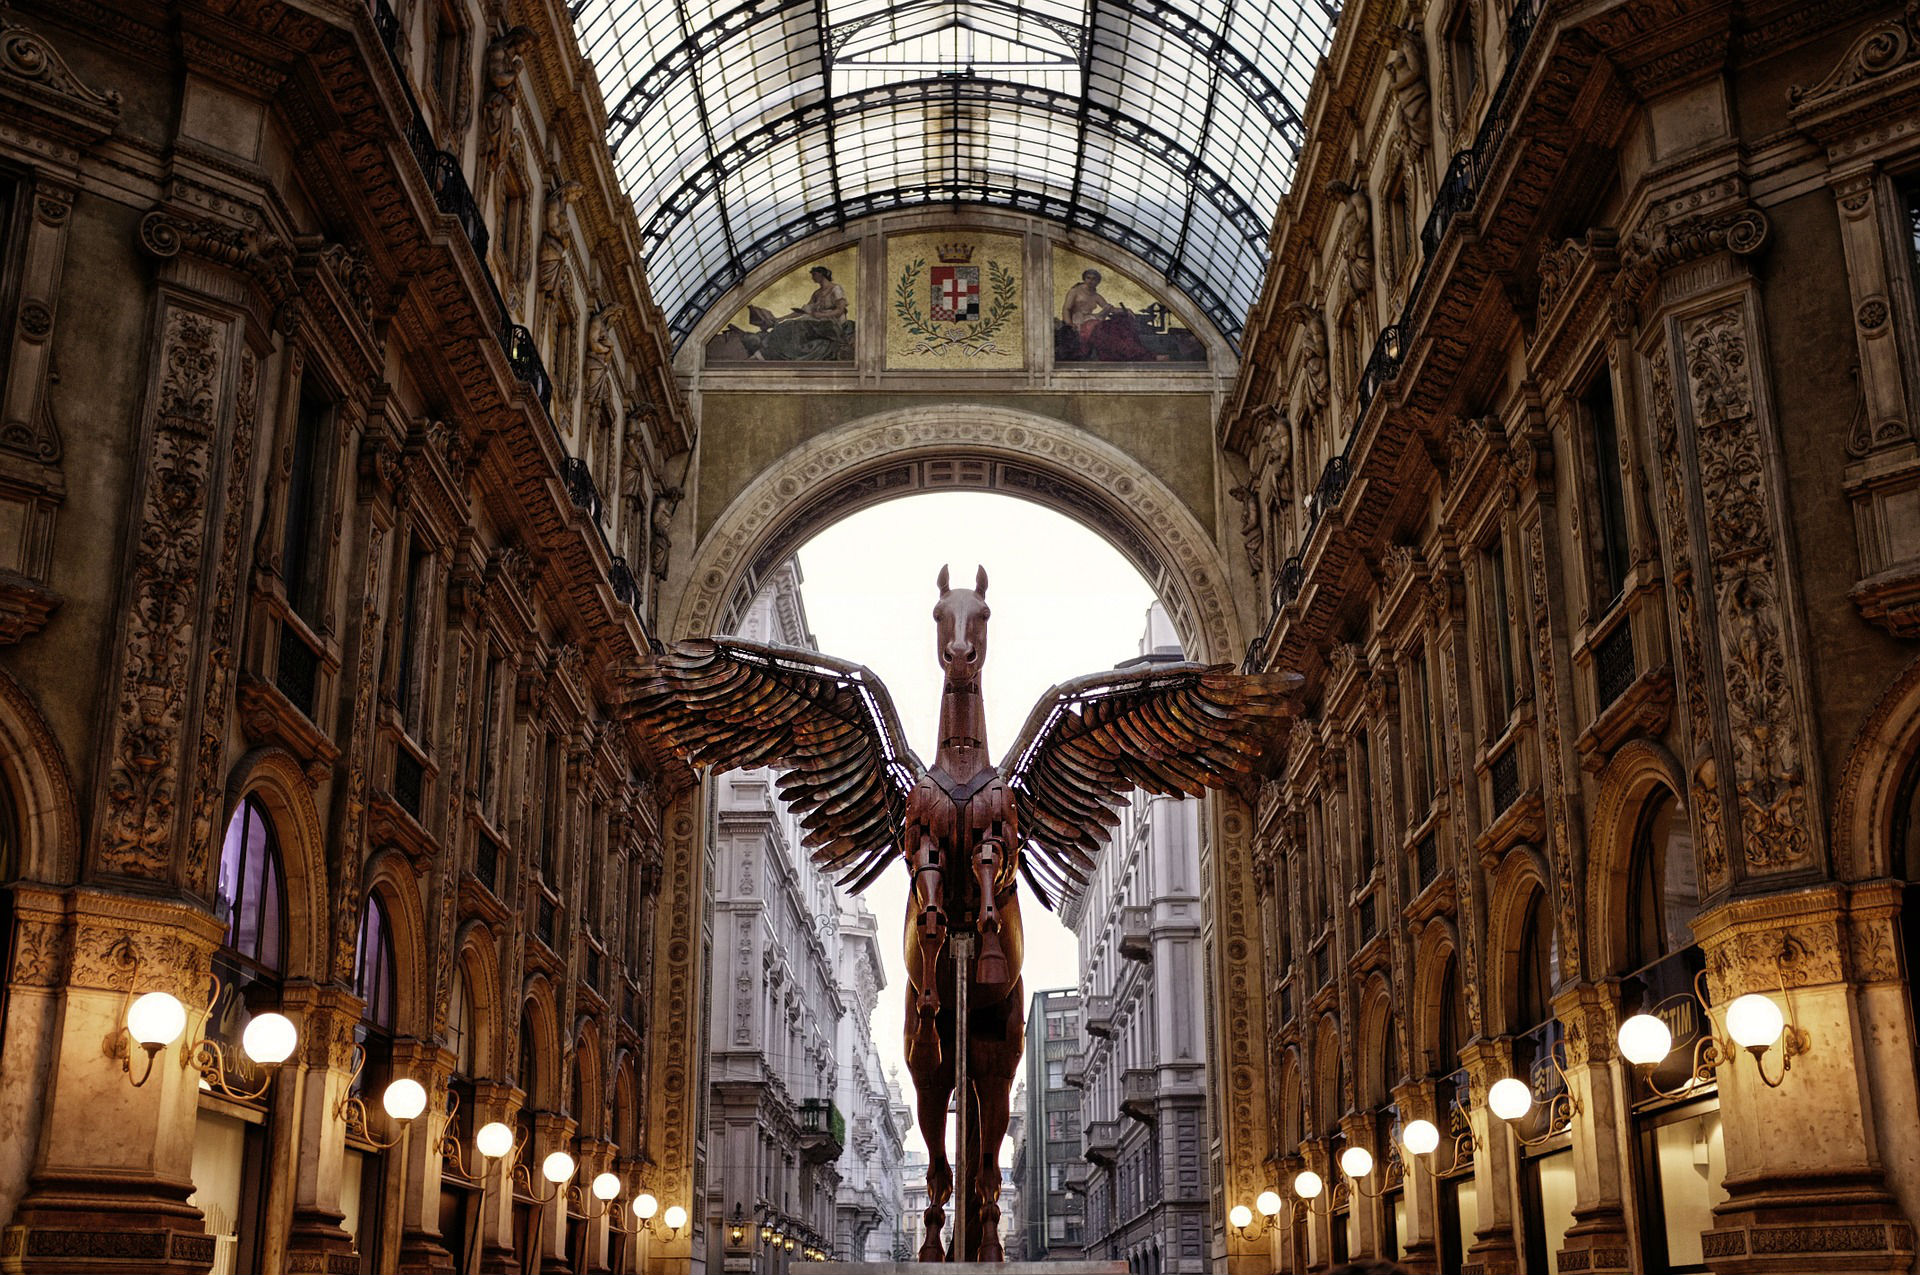 Shopping Mall in Milan